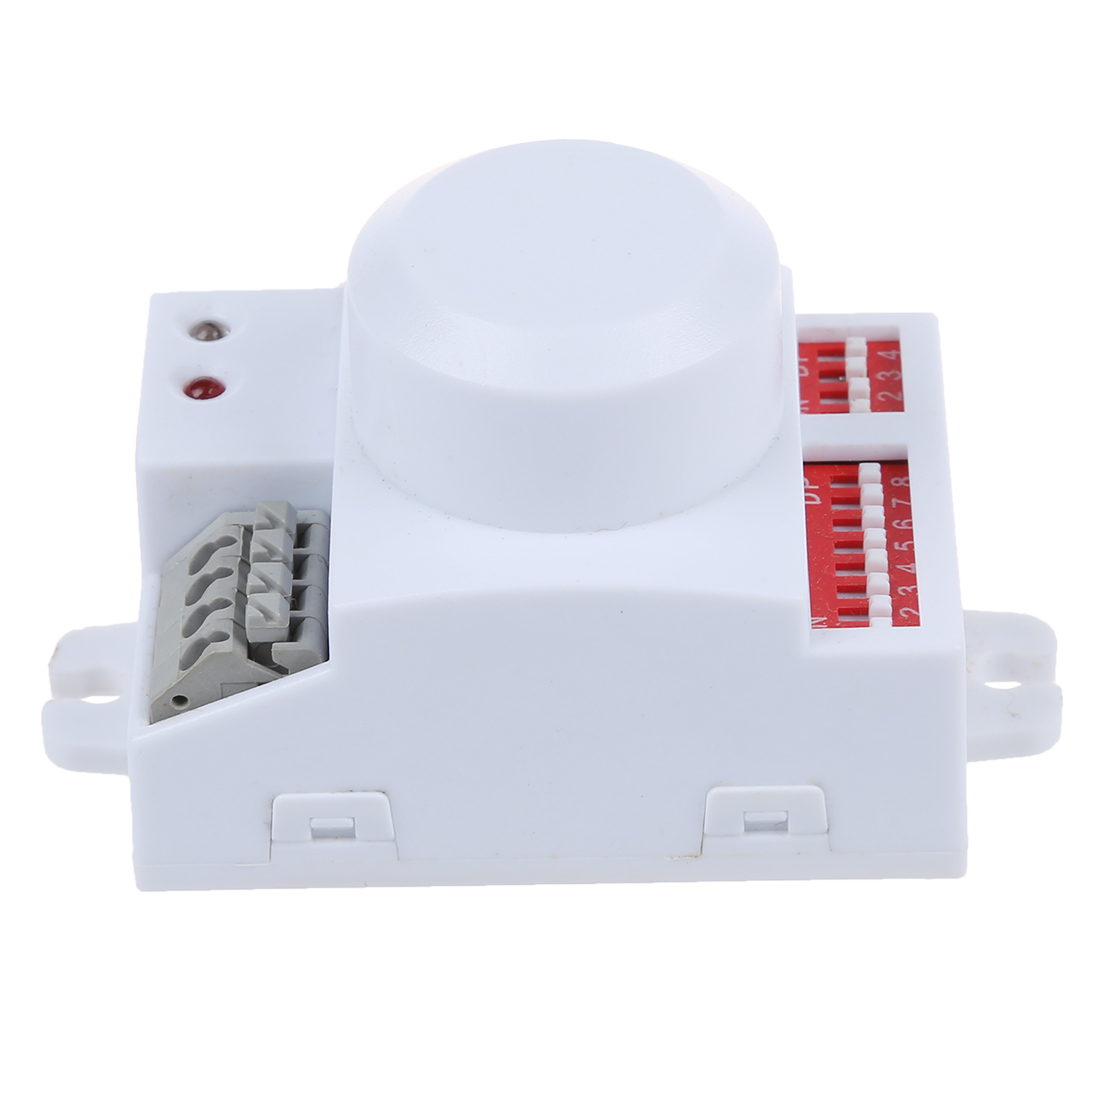 miniwave motion sensor switch Doppler Radar Wireless Module for lighting 220V - White tefia бальзам для всех типов волос beauty shape treatment 250мл